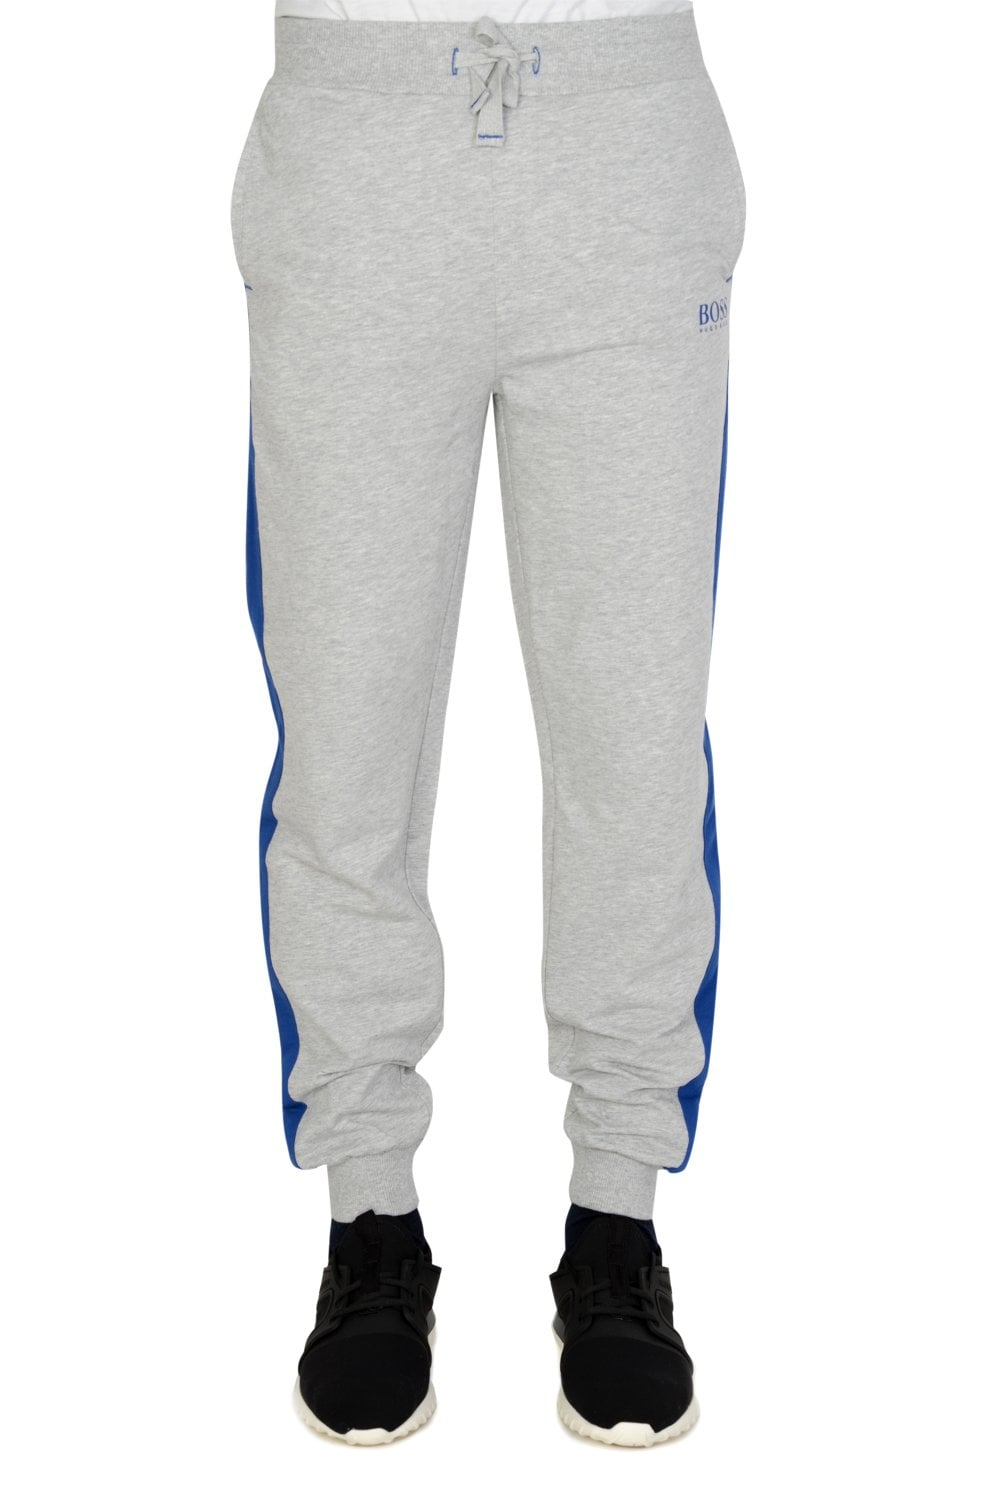 cheaper sale highly coveted range of outlet on sale Hugo Authentic Joggers